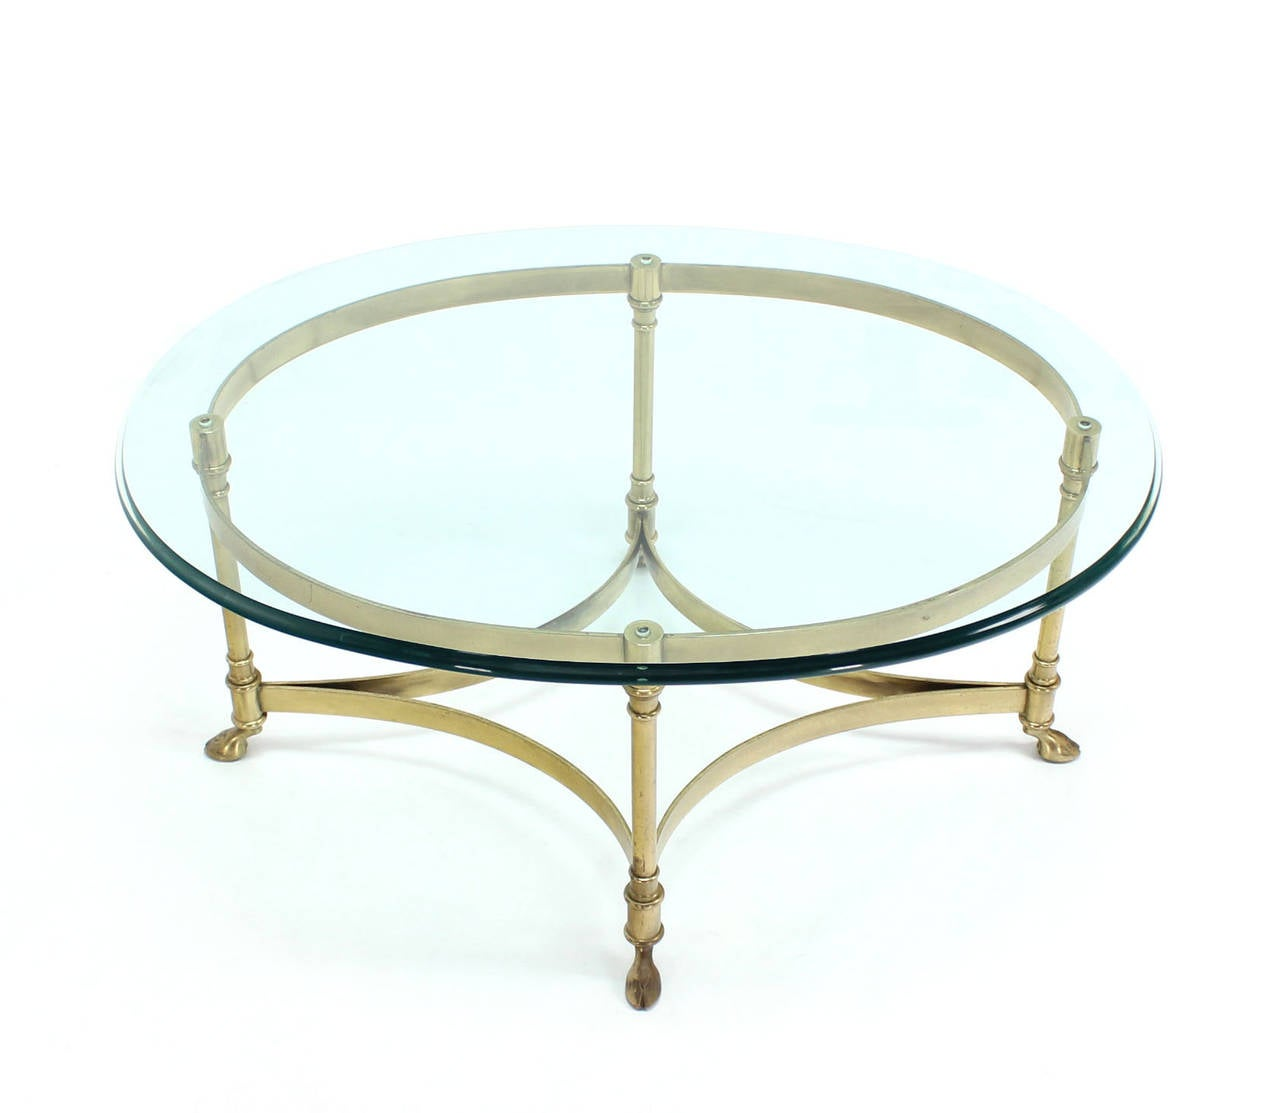 Brass and glass oval hoof feet coffee table at 1stdibs Glass oval coffee tables